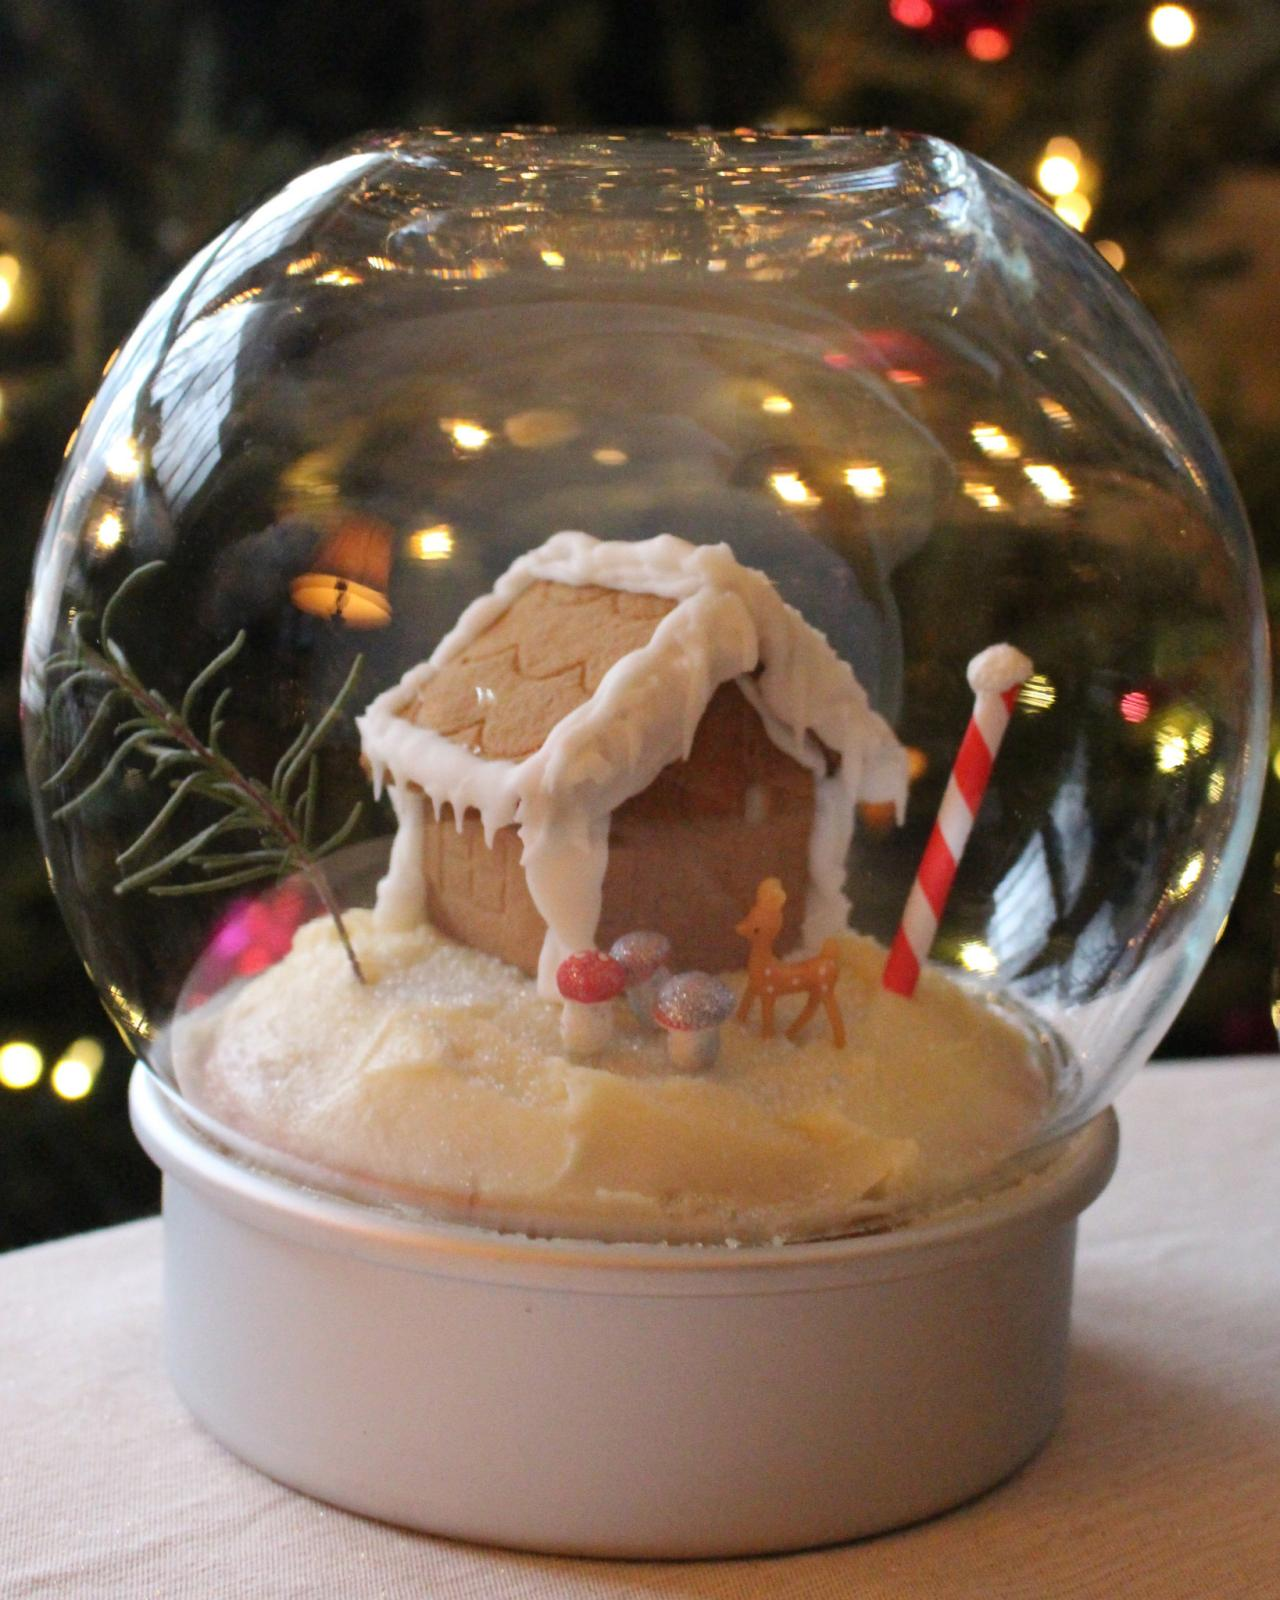 Mini Gingerbread House Diy: Make An Edible Snow Globe For The Holidays